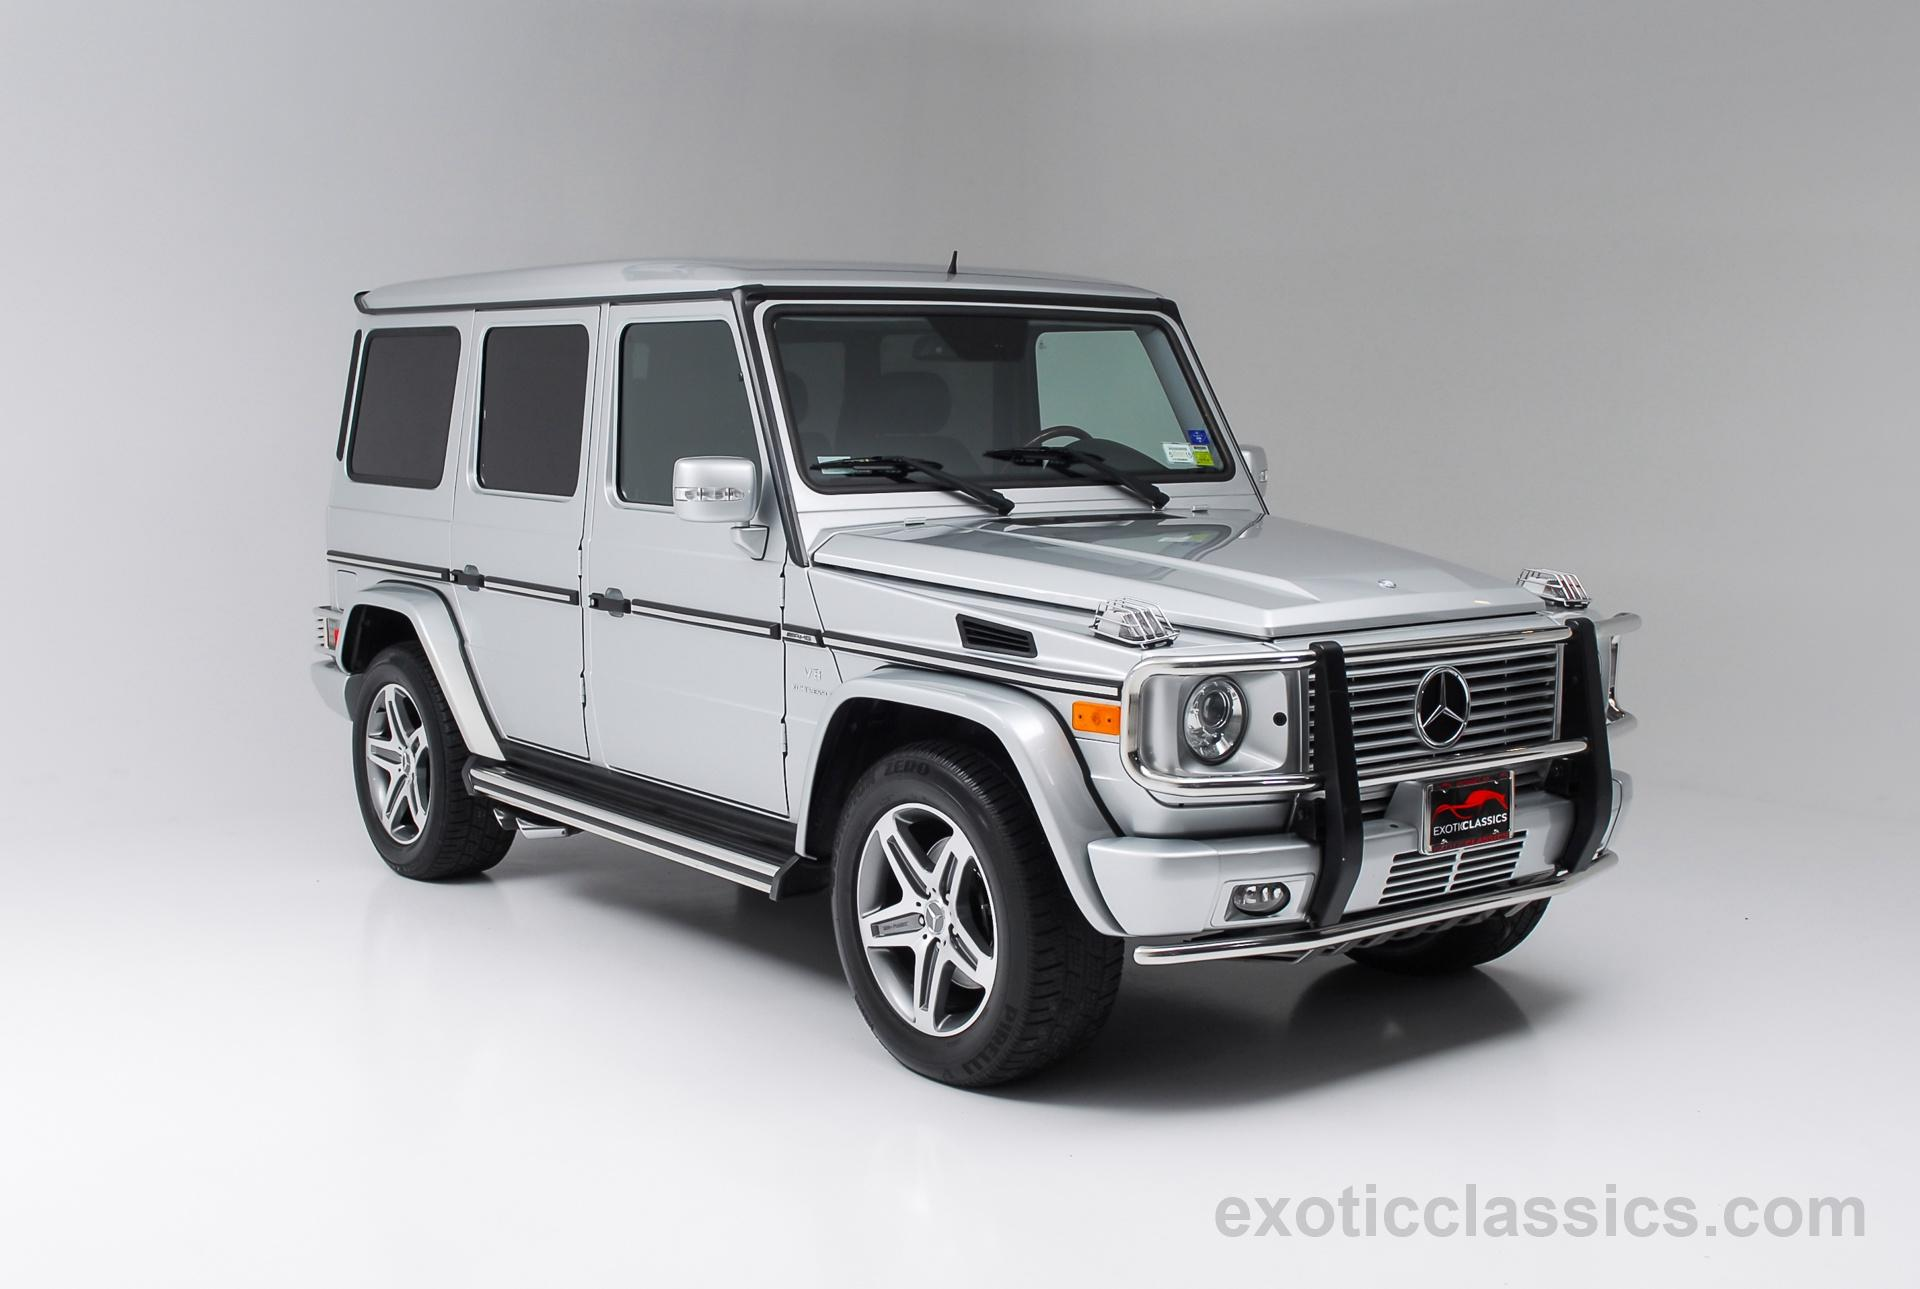 2007 Mercedes Benz G55 Amg G55 Amg Exotic And Classic